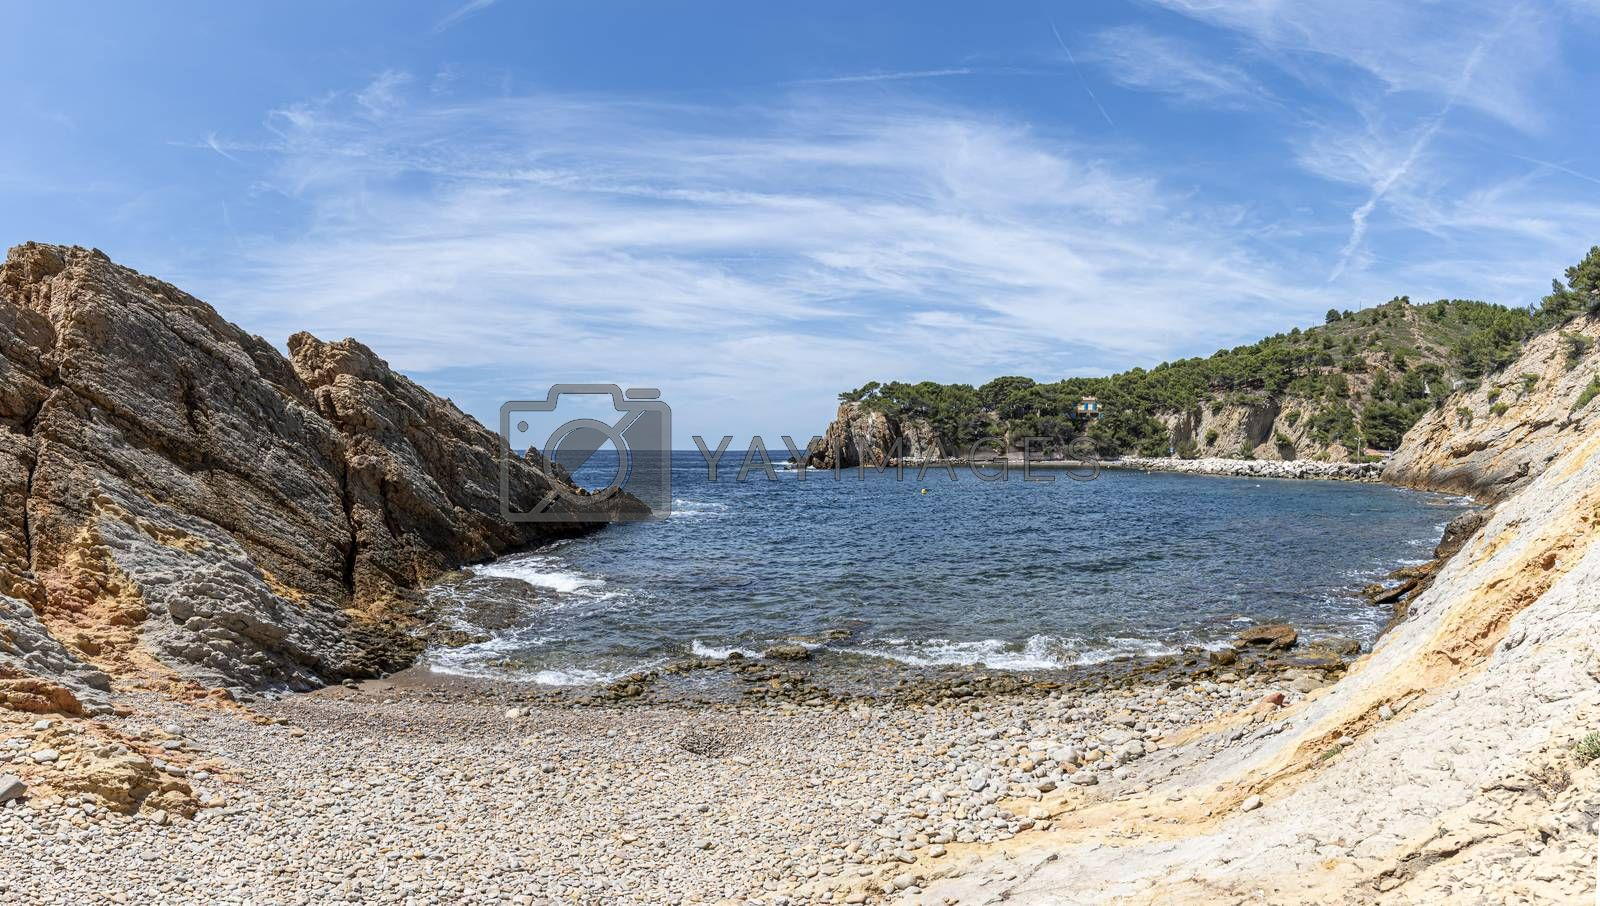 pebble beach of Calanques of Figuieres, France by GABIS